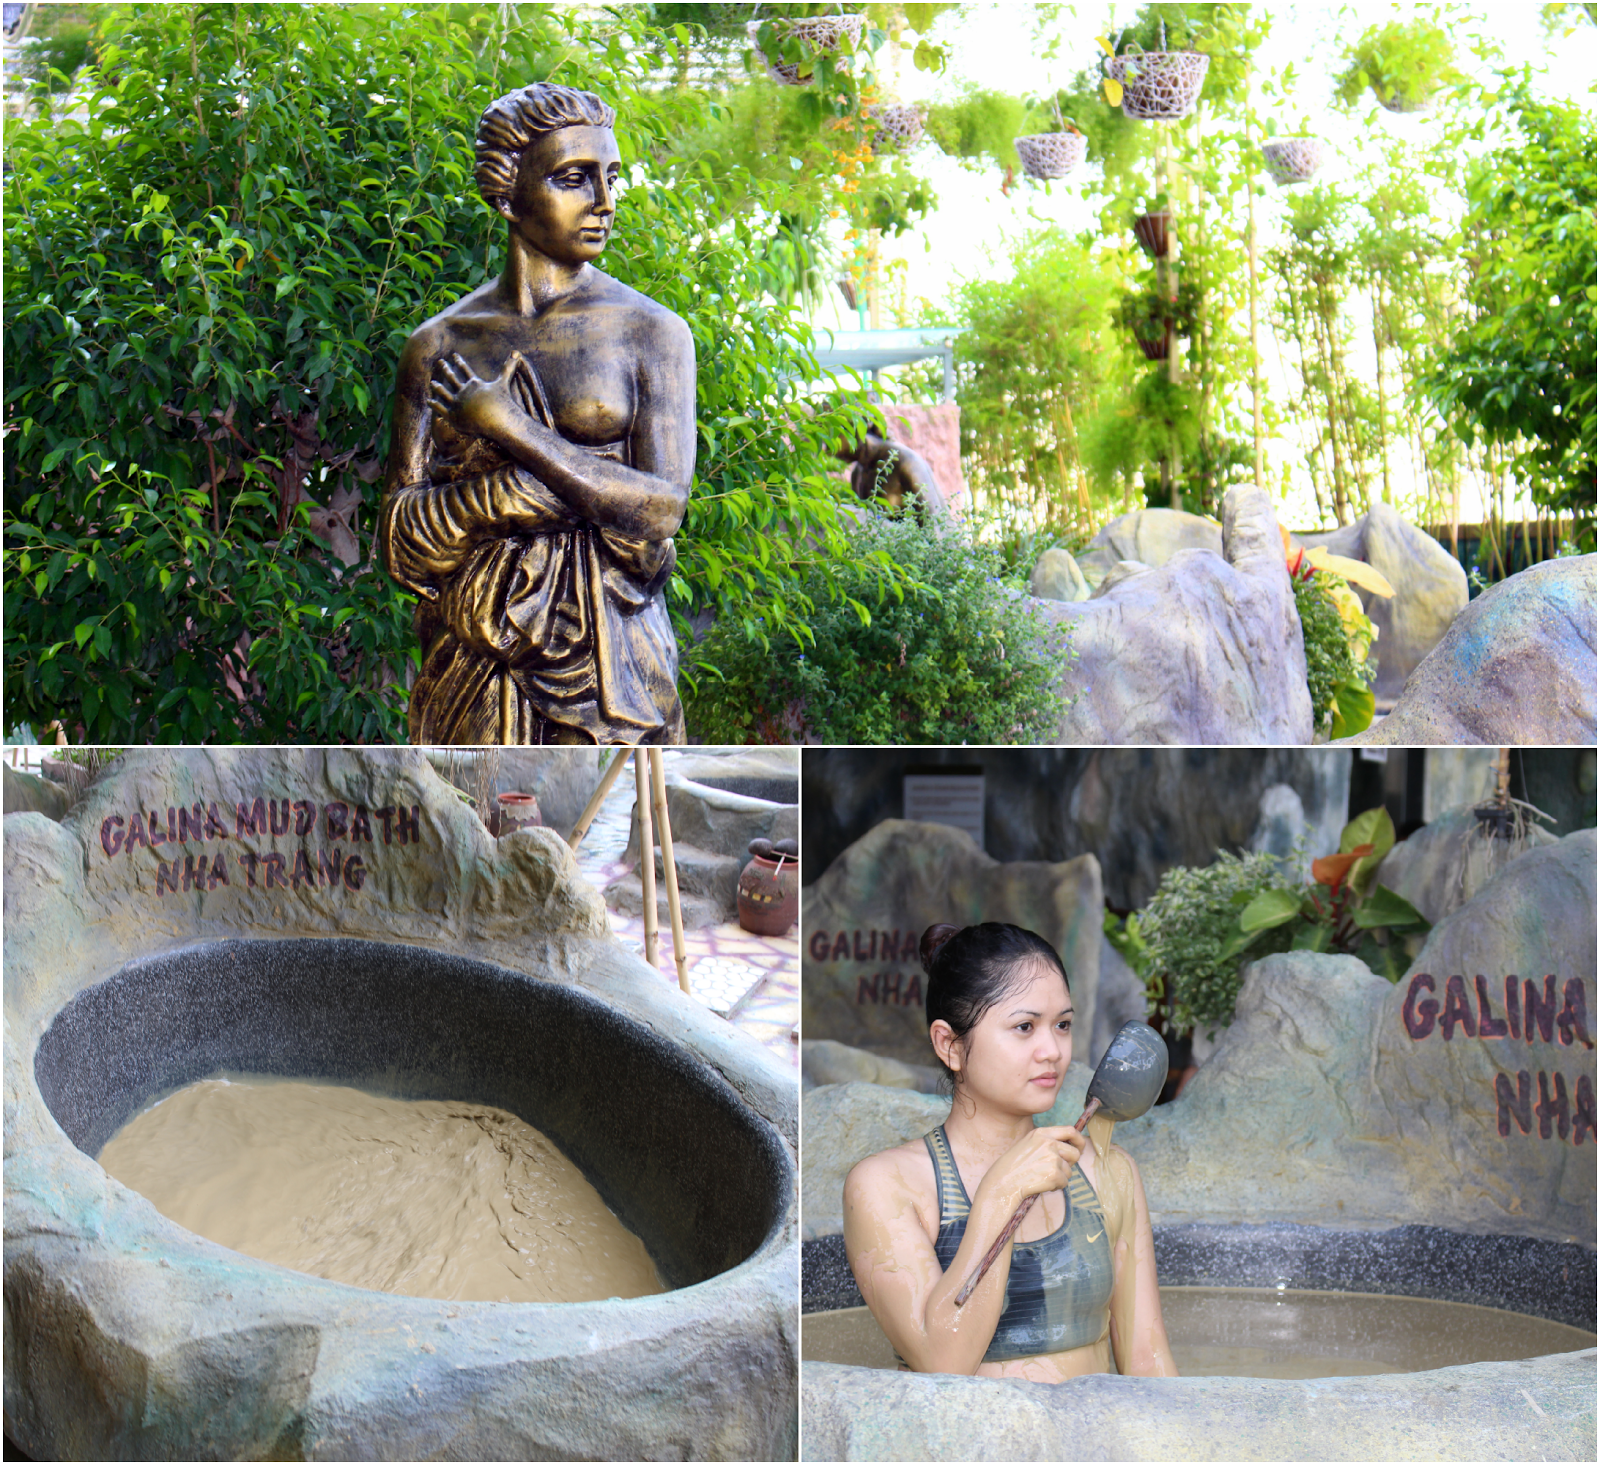 Galina Mud Bath and Spa Experience Nha Trang Vietnam Travel Must